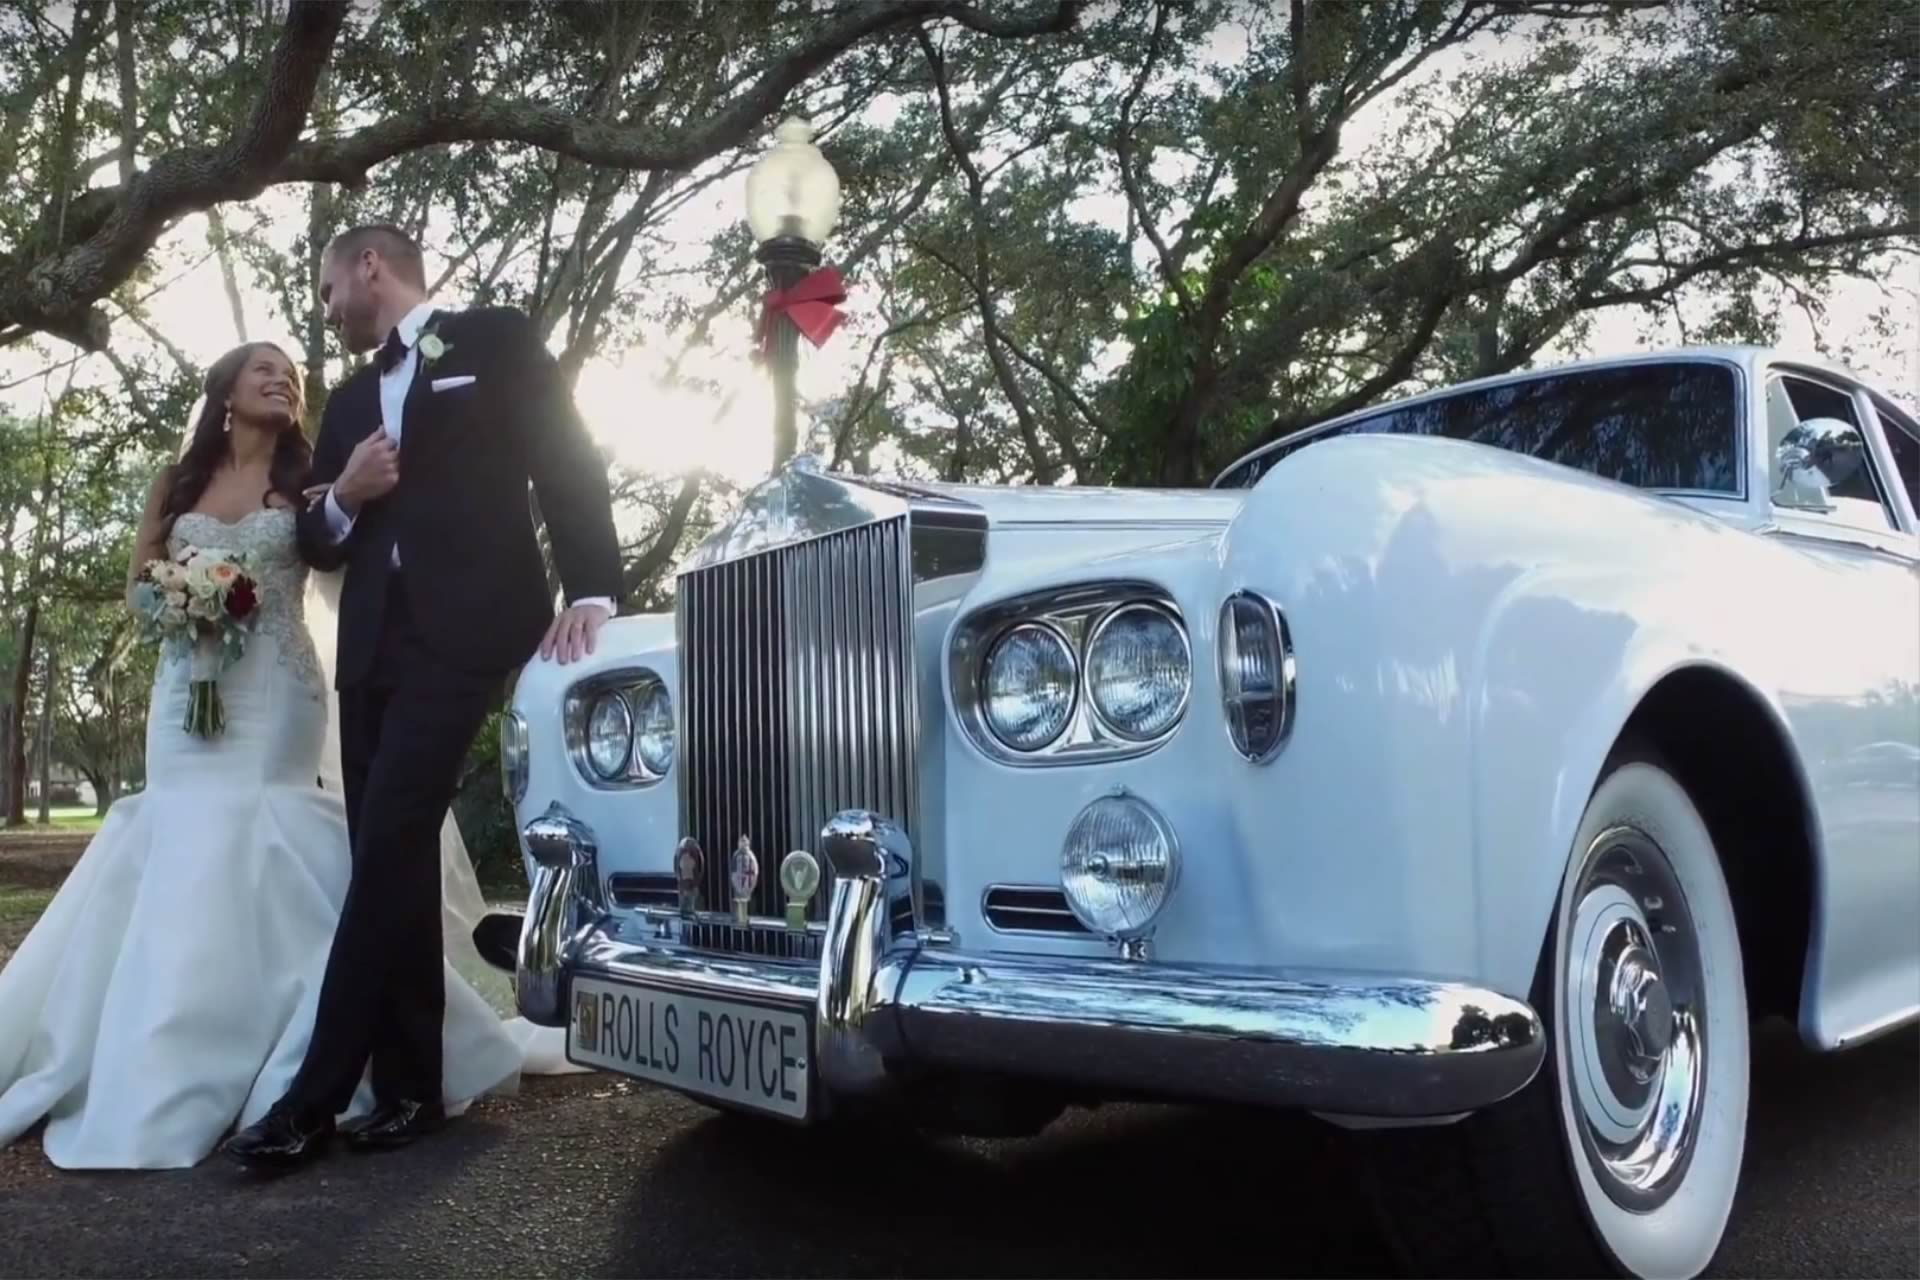 Vip Wedding Transportation - Image provided by: RiantFilms.com